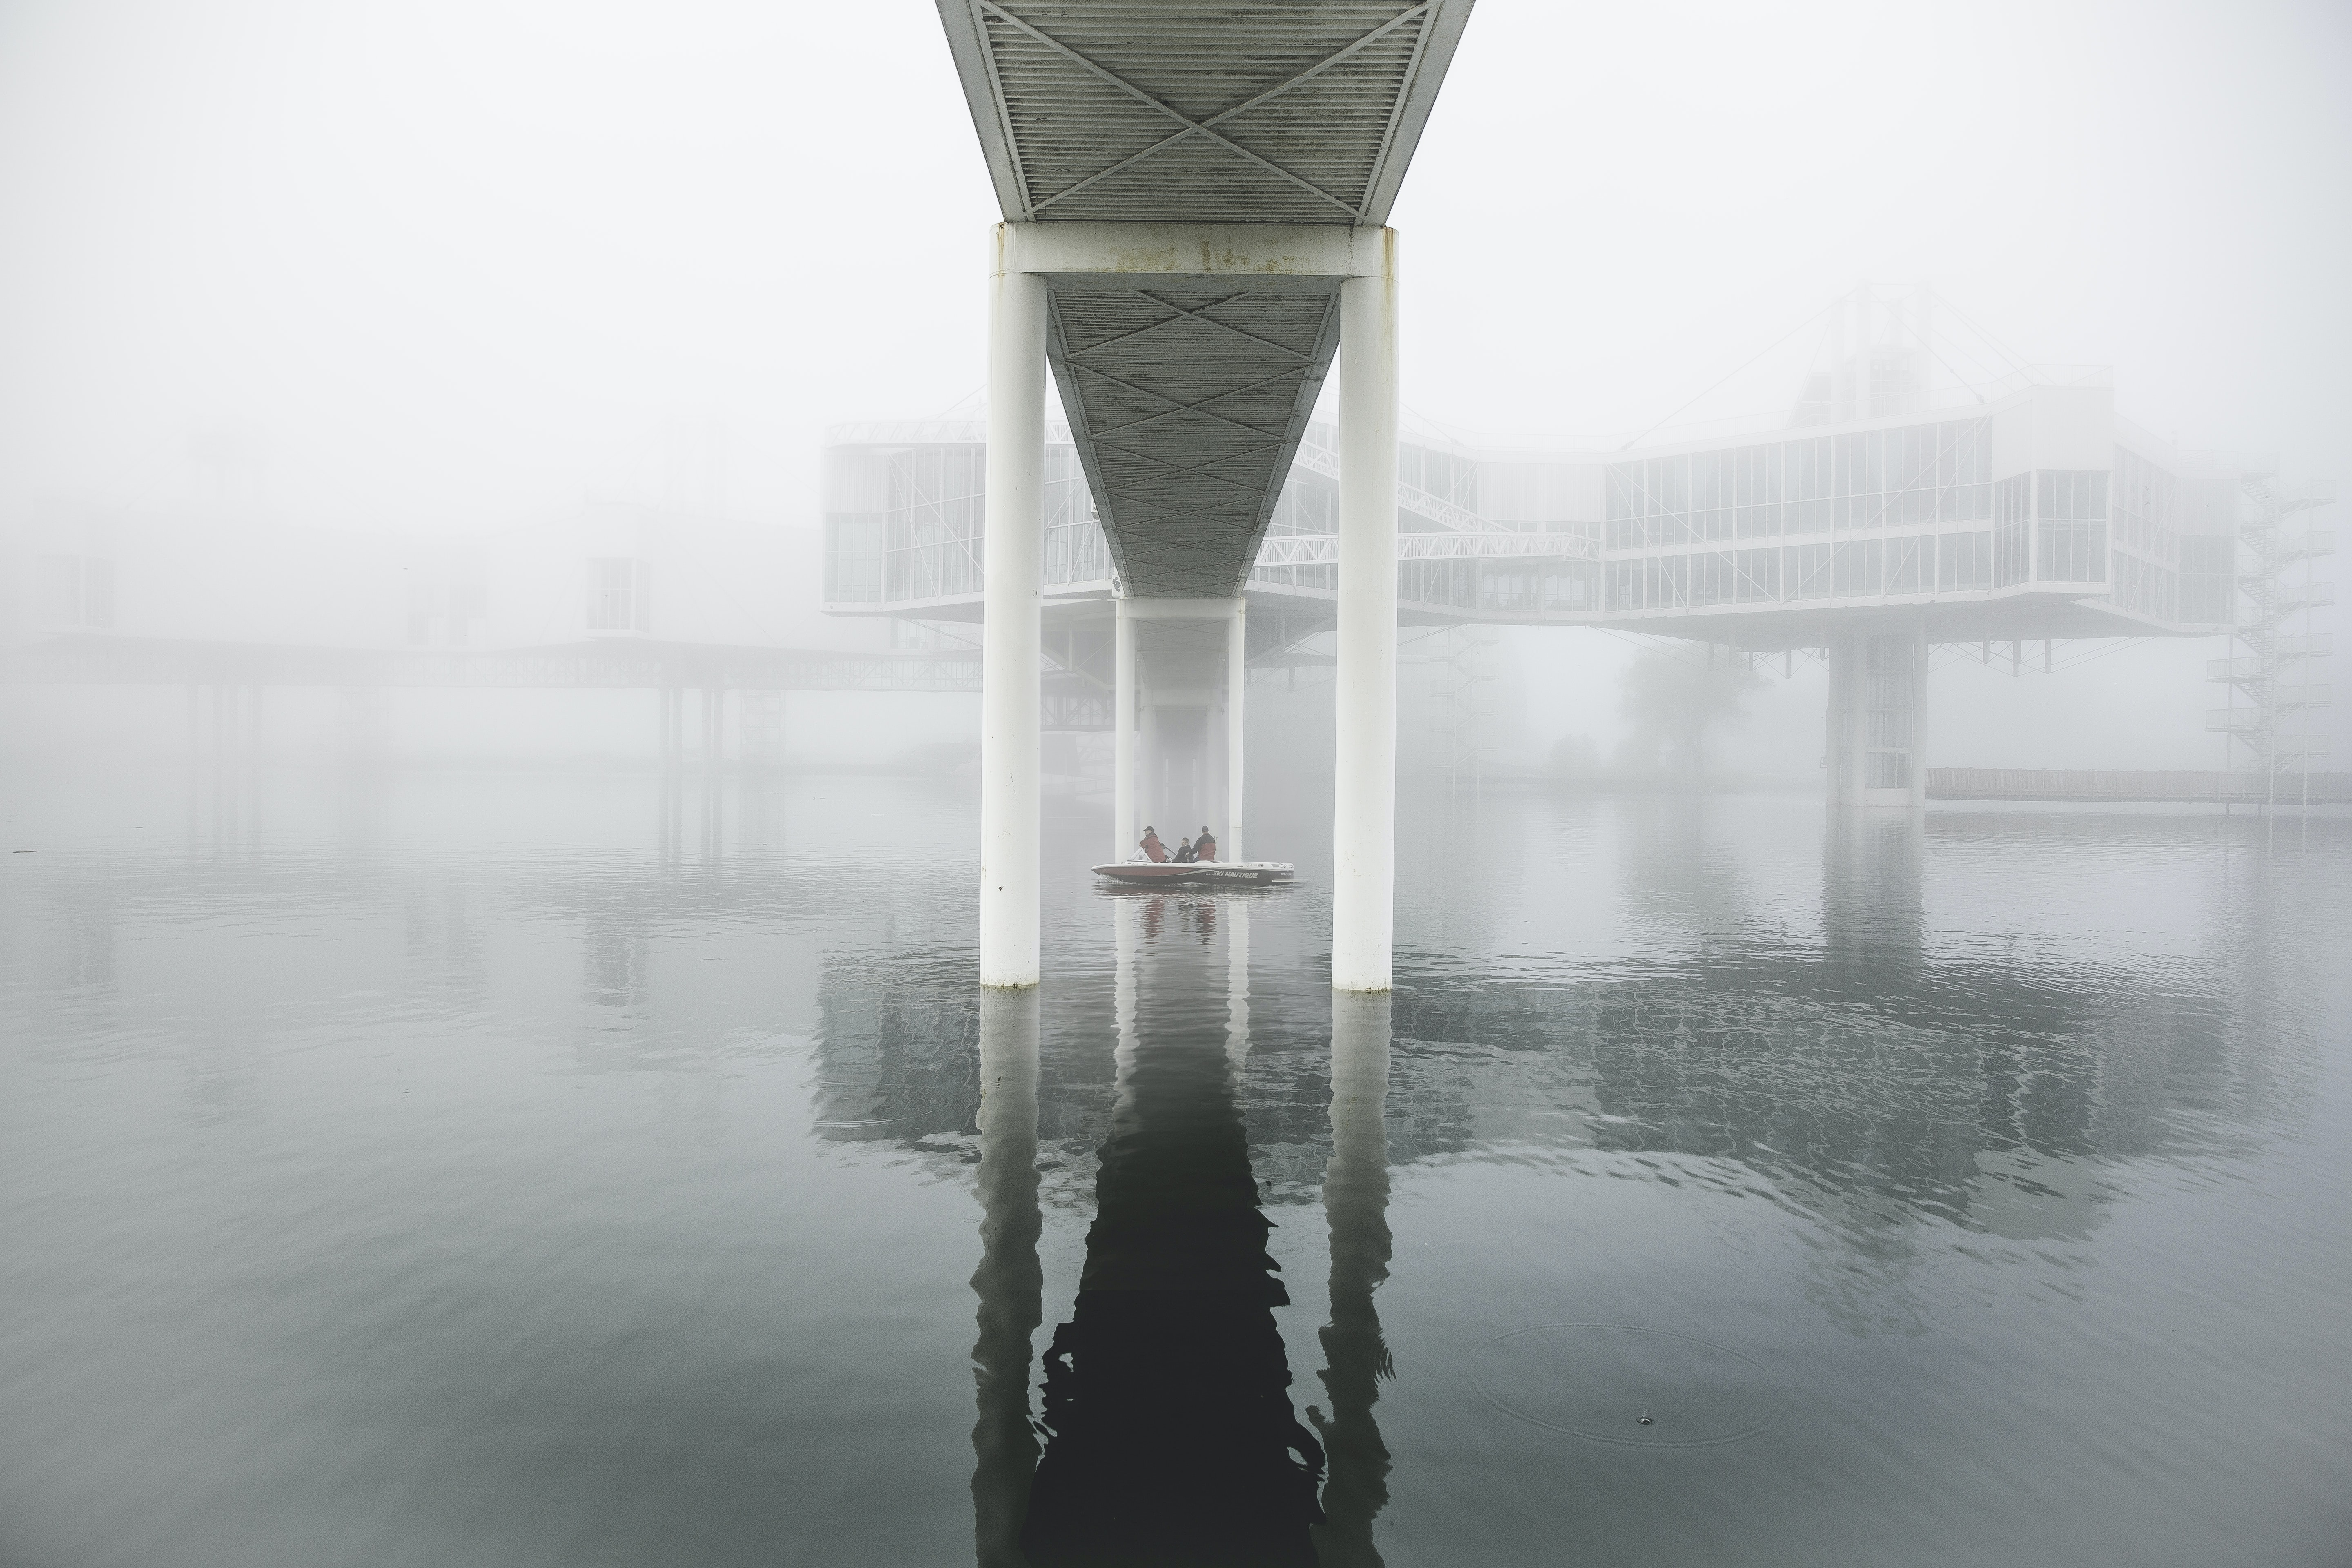 reflection of footbridge above of body of water